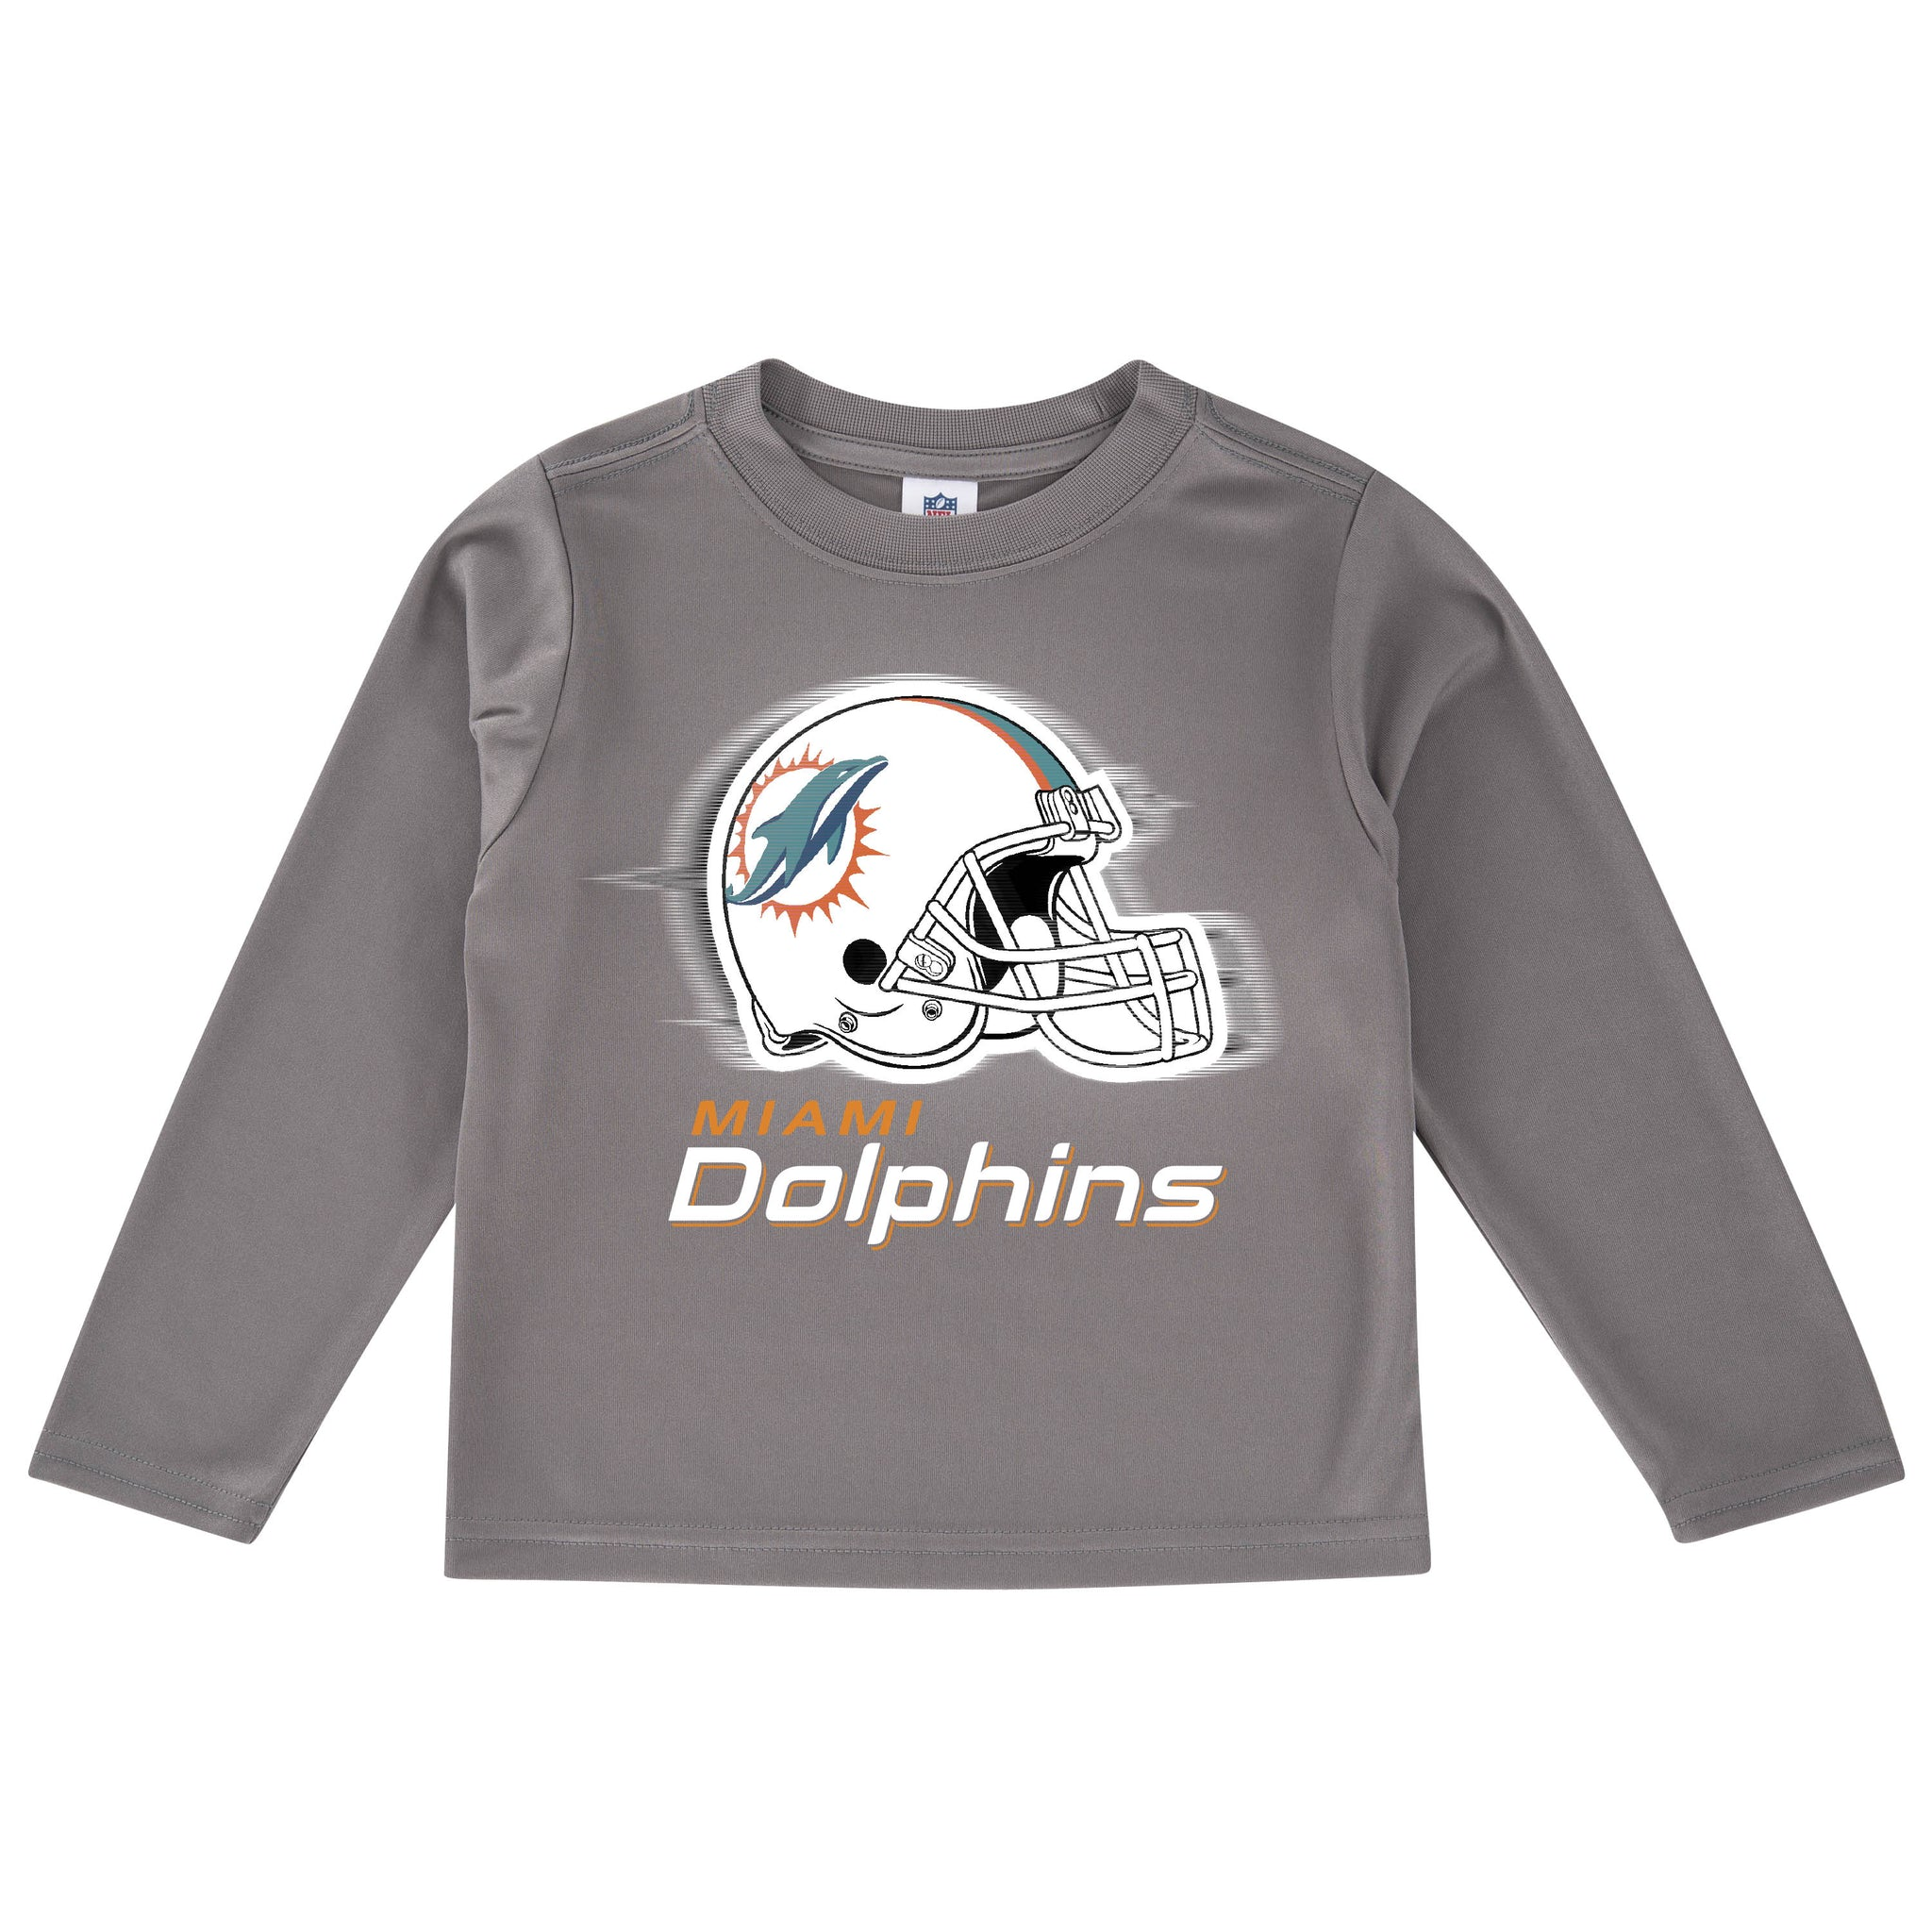 Miami Dolphins Toddler Boys' Long Sleeve Logo Tee-Gerber Childrenswear